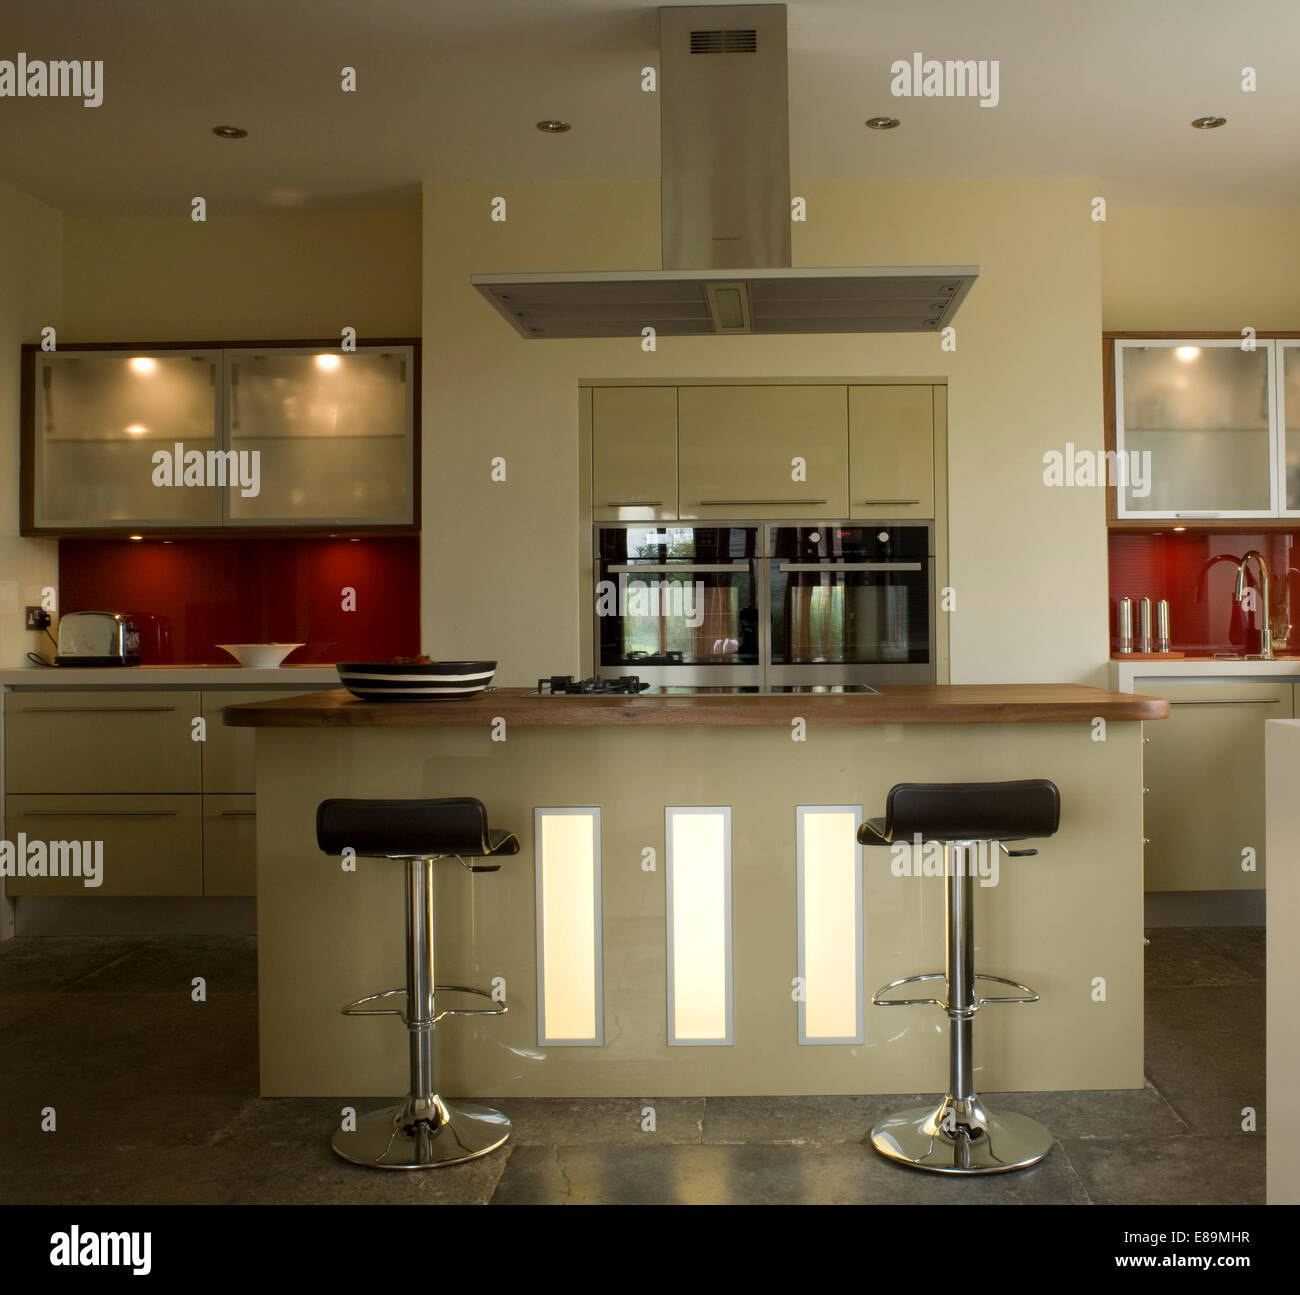 bar stools at central island breakfast bar in modern kitchen with